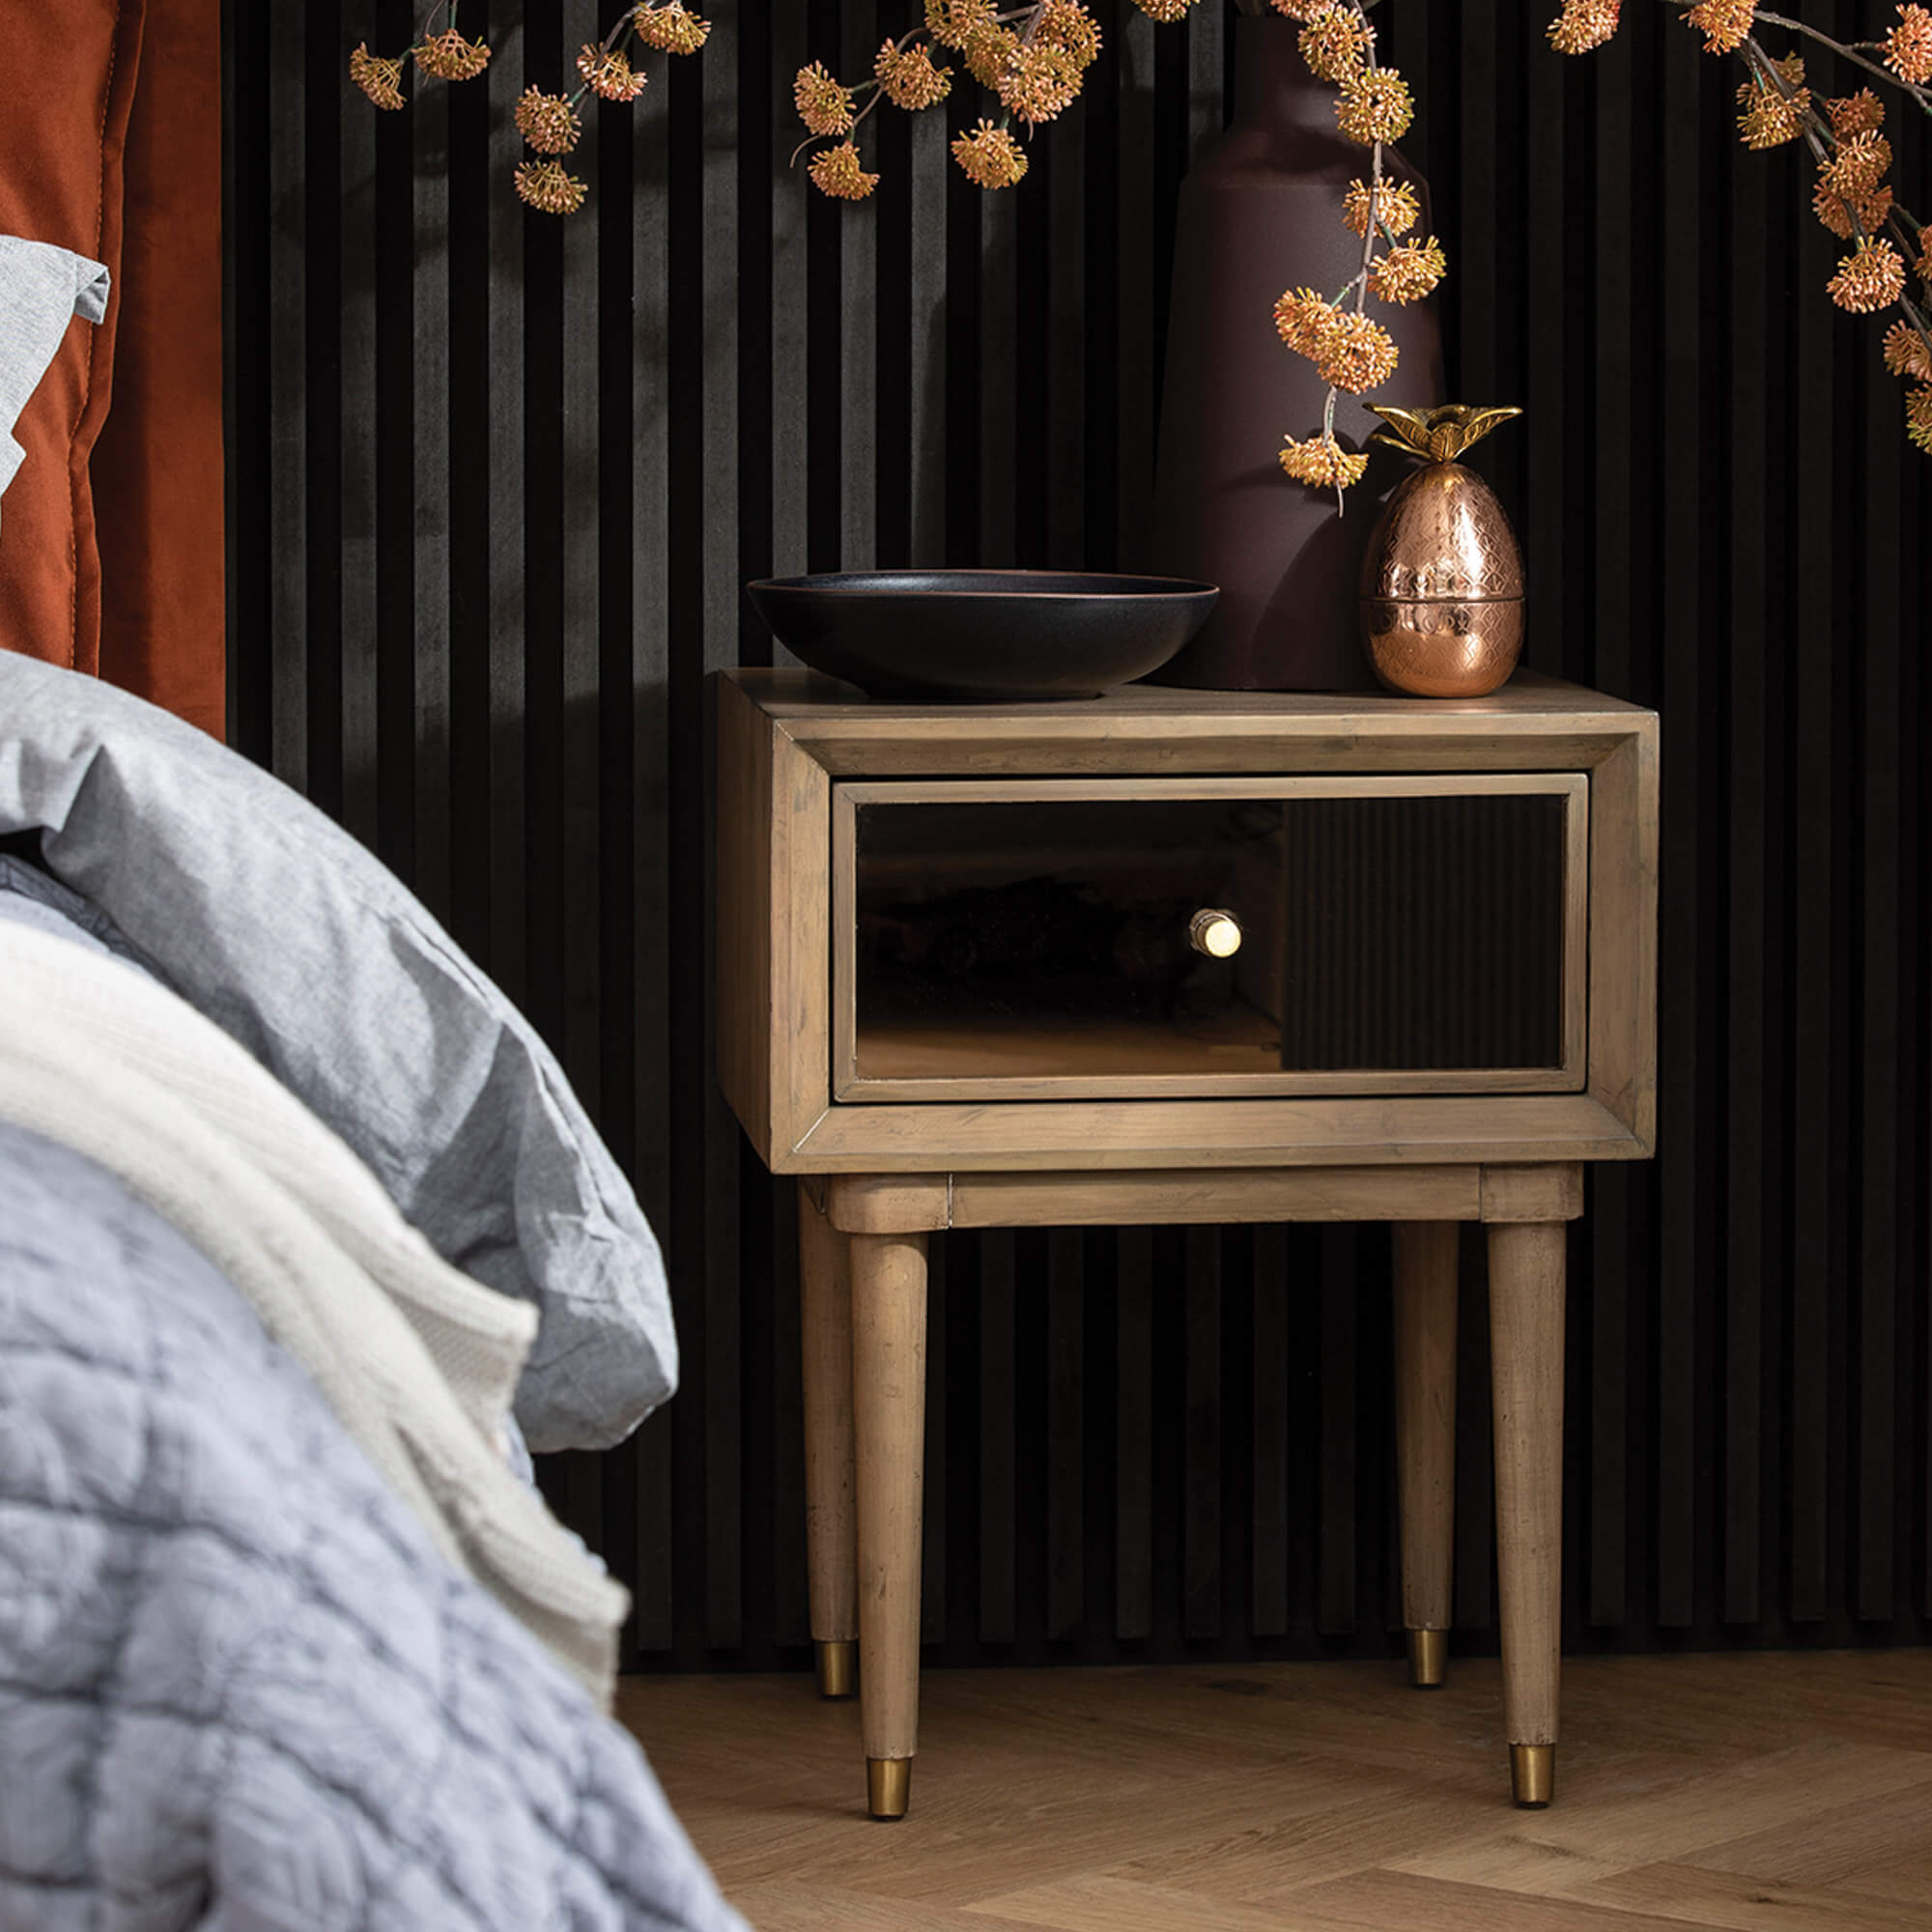 Francesca Reclaimed Wood Rose Gold Mirrored 1 Drawer Bedside Table